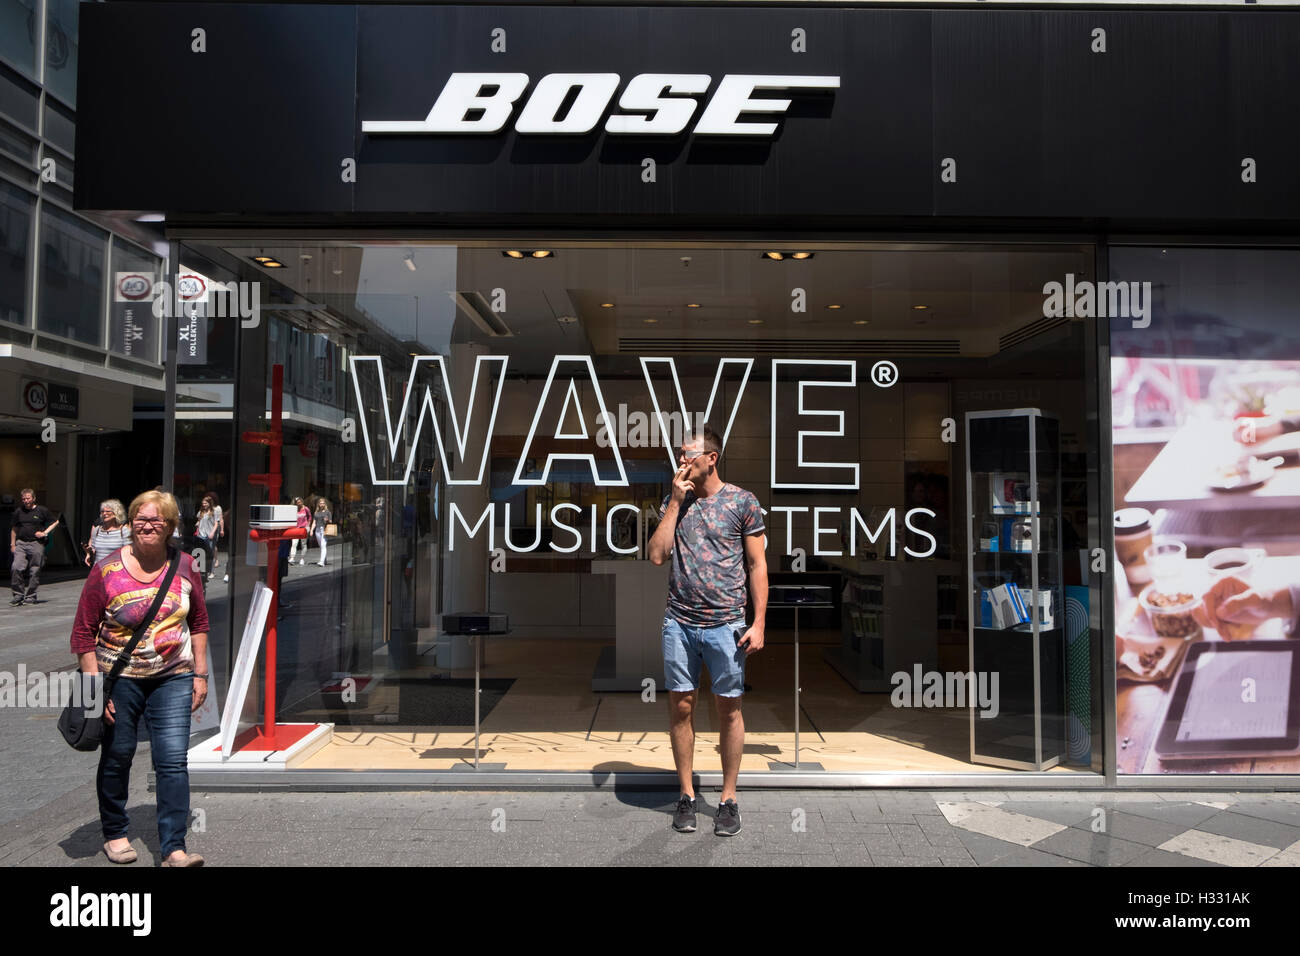 Bose hi-fi store Cologne Germany - Stock Image